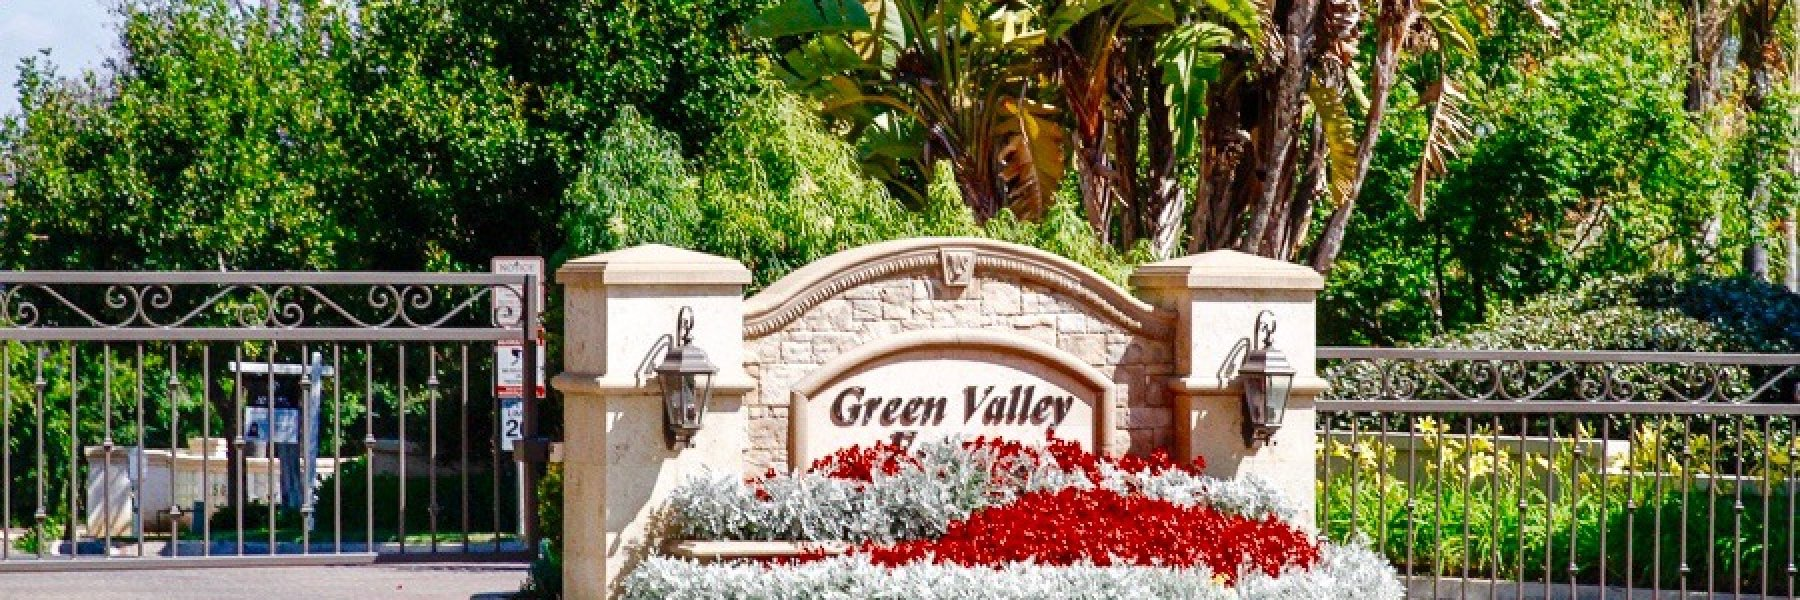 Green Valley Highlands is a community of homes in Poway California